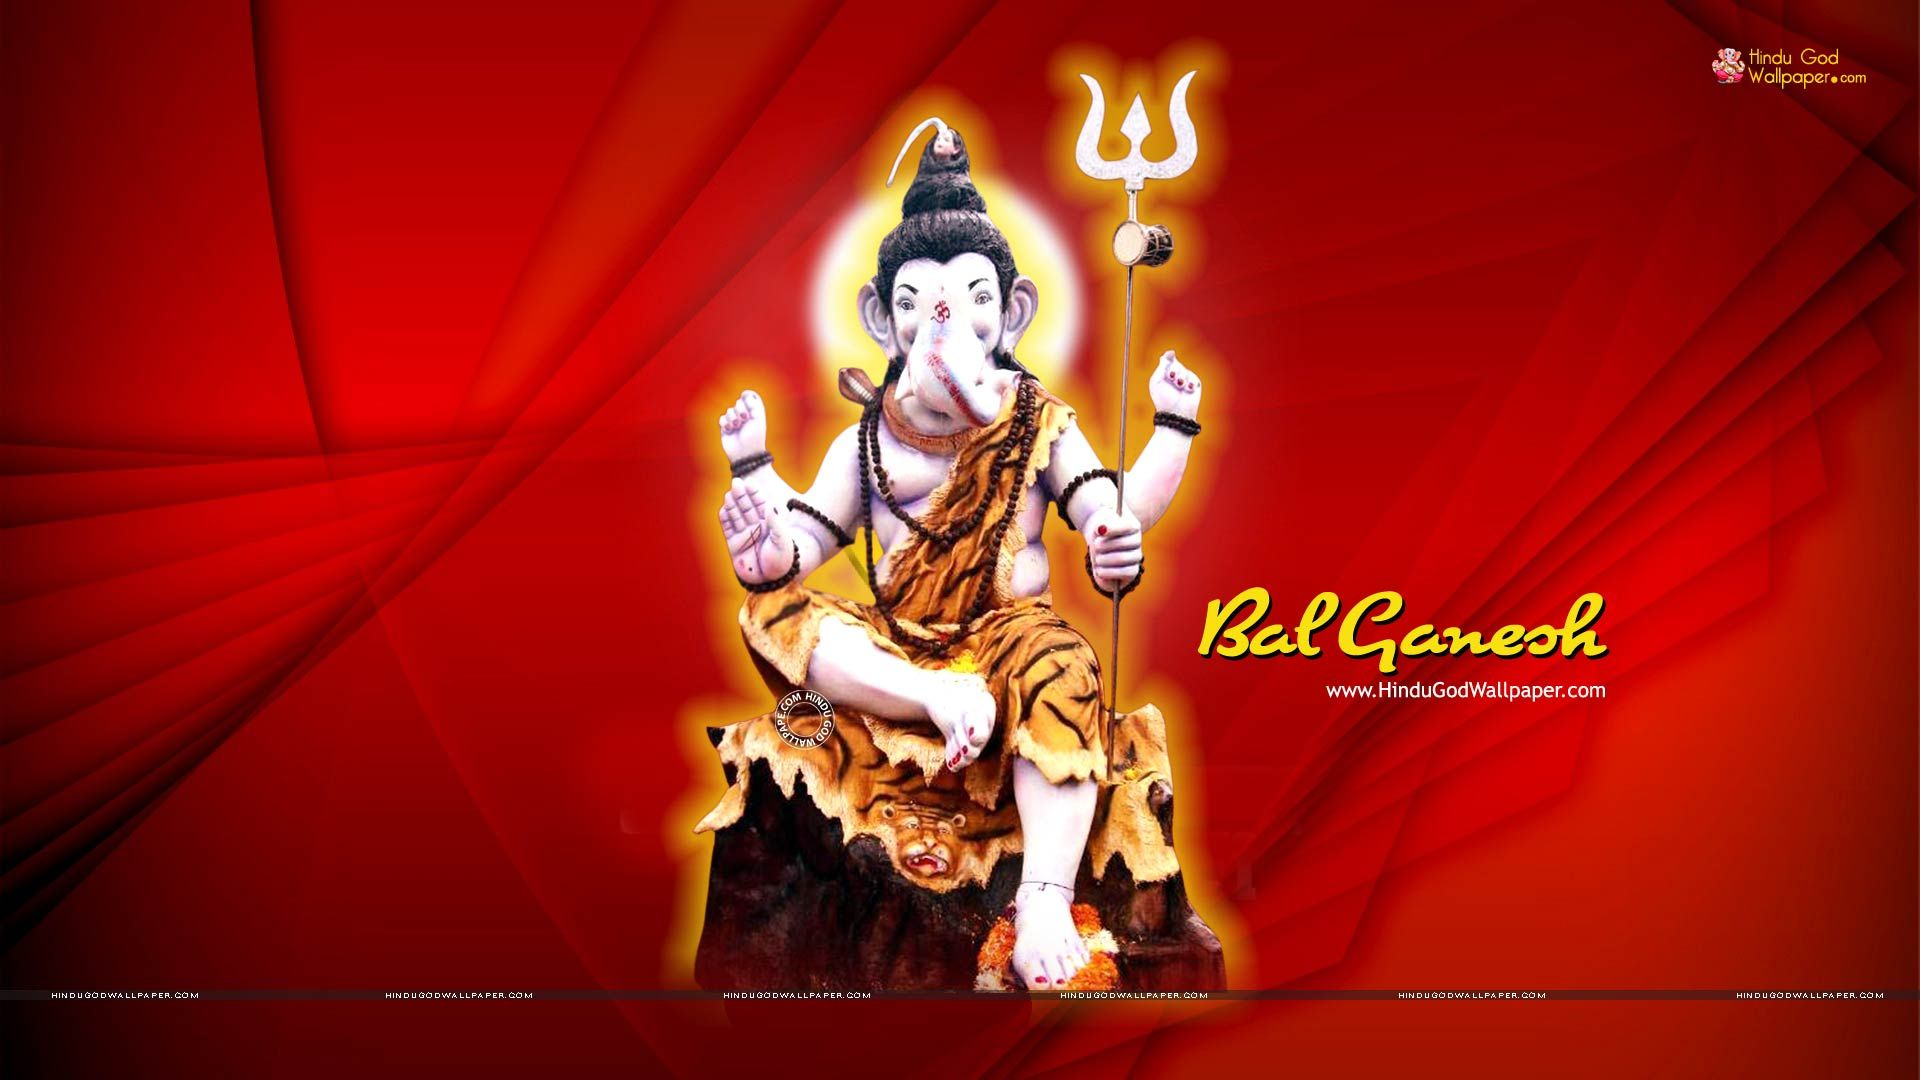 Hd wallpaper ganesh - Bal Ganesh Wallpaper Hd